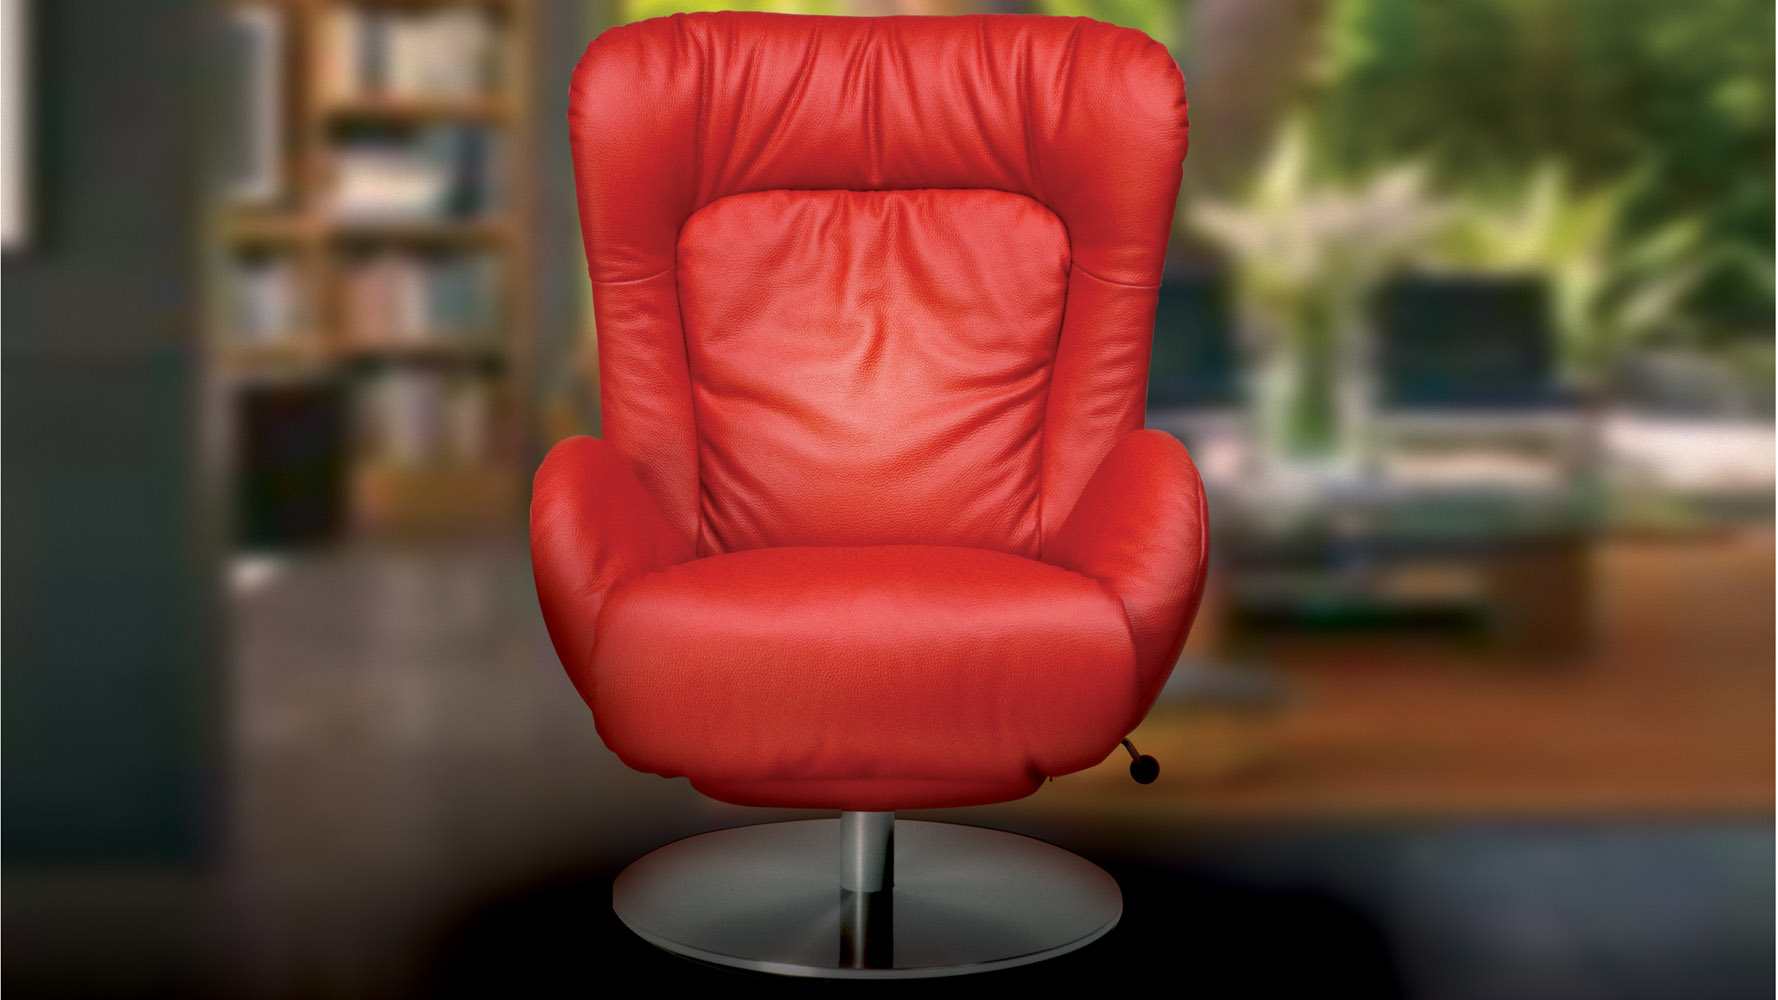 Amy Recliner & Amy Leather Adjustable Reclining Chair | Zuri Furniture islam-shia.org